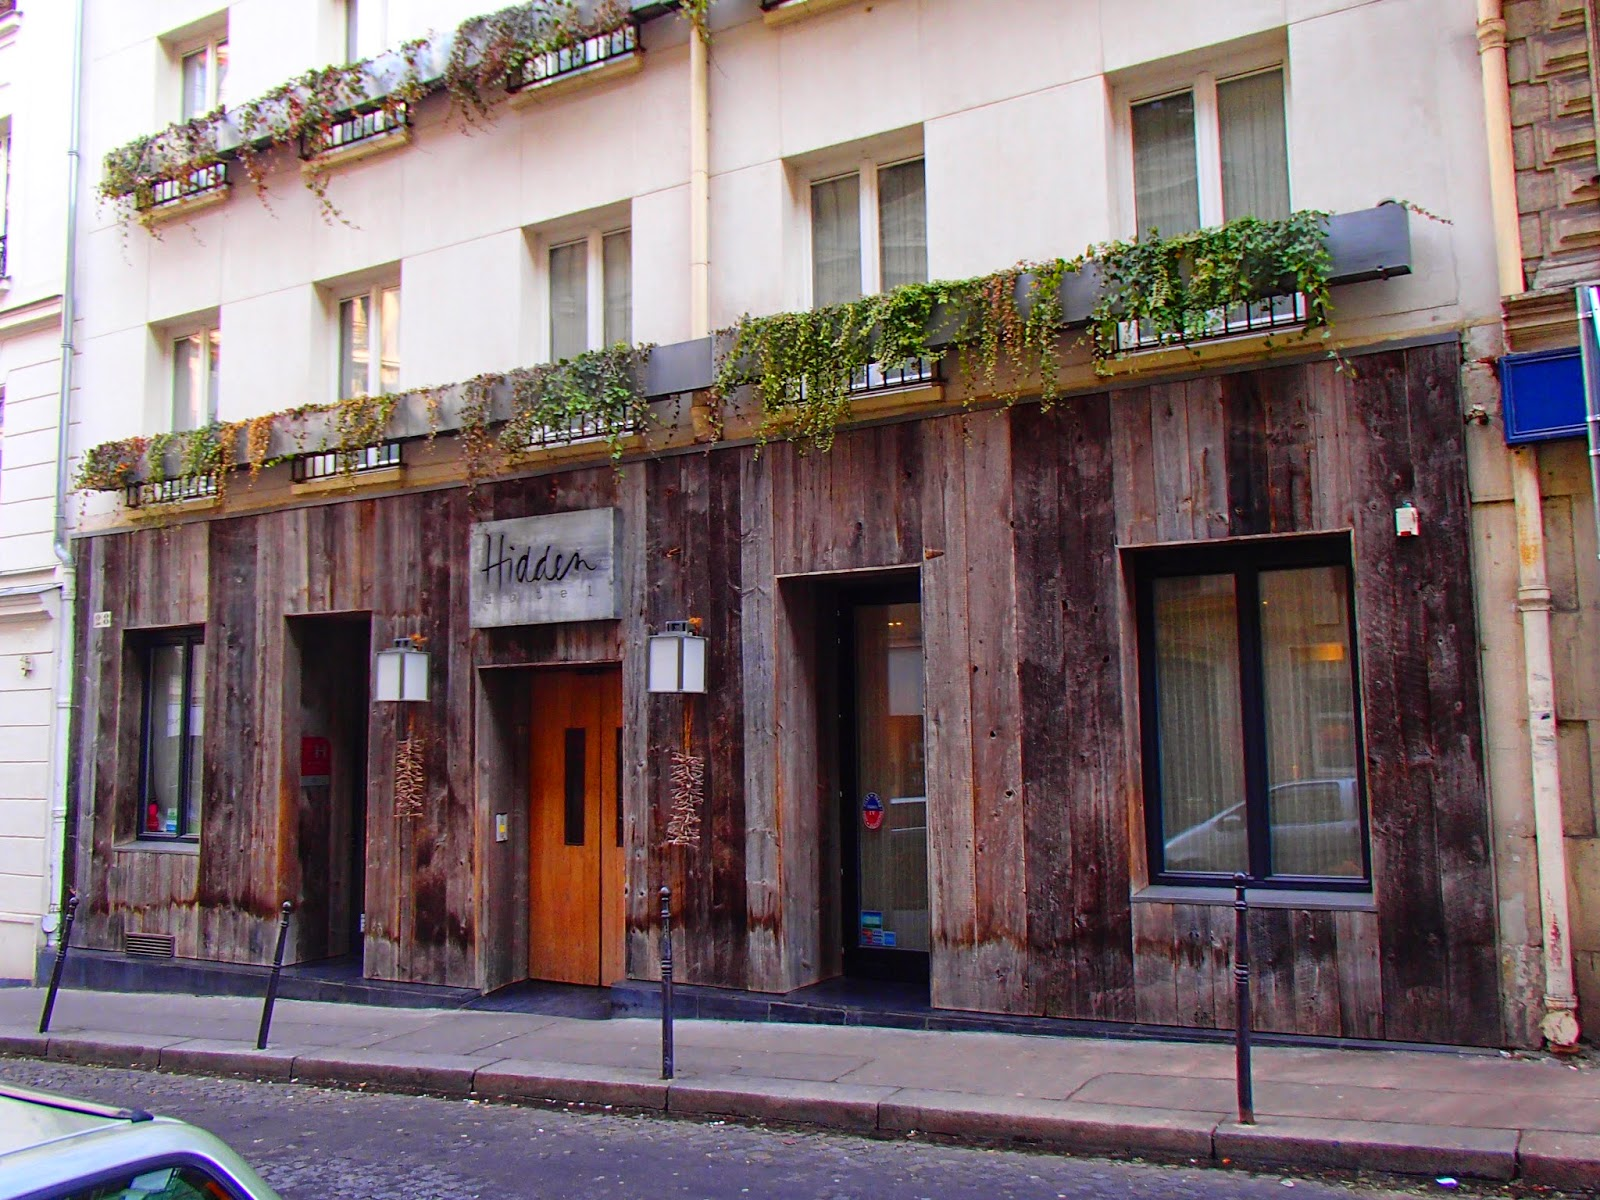 http://www.theaussieflashpacker.com/2015/02/luxury-hotel-review-hidden-hotel-paris.html